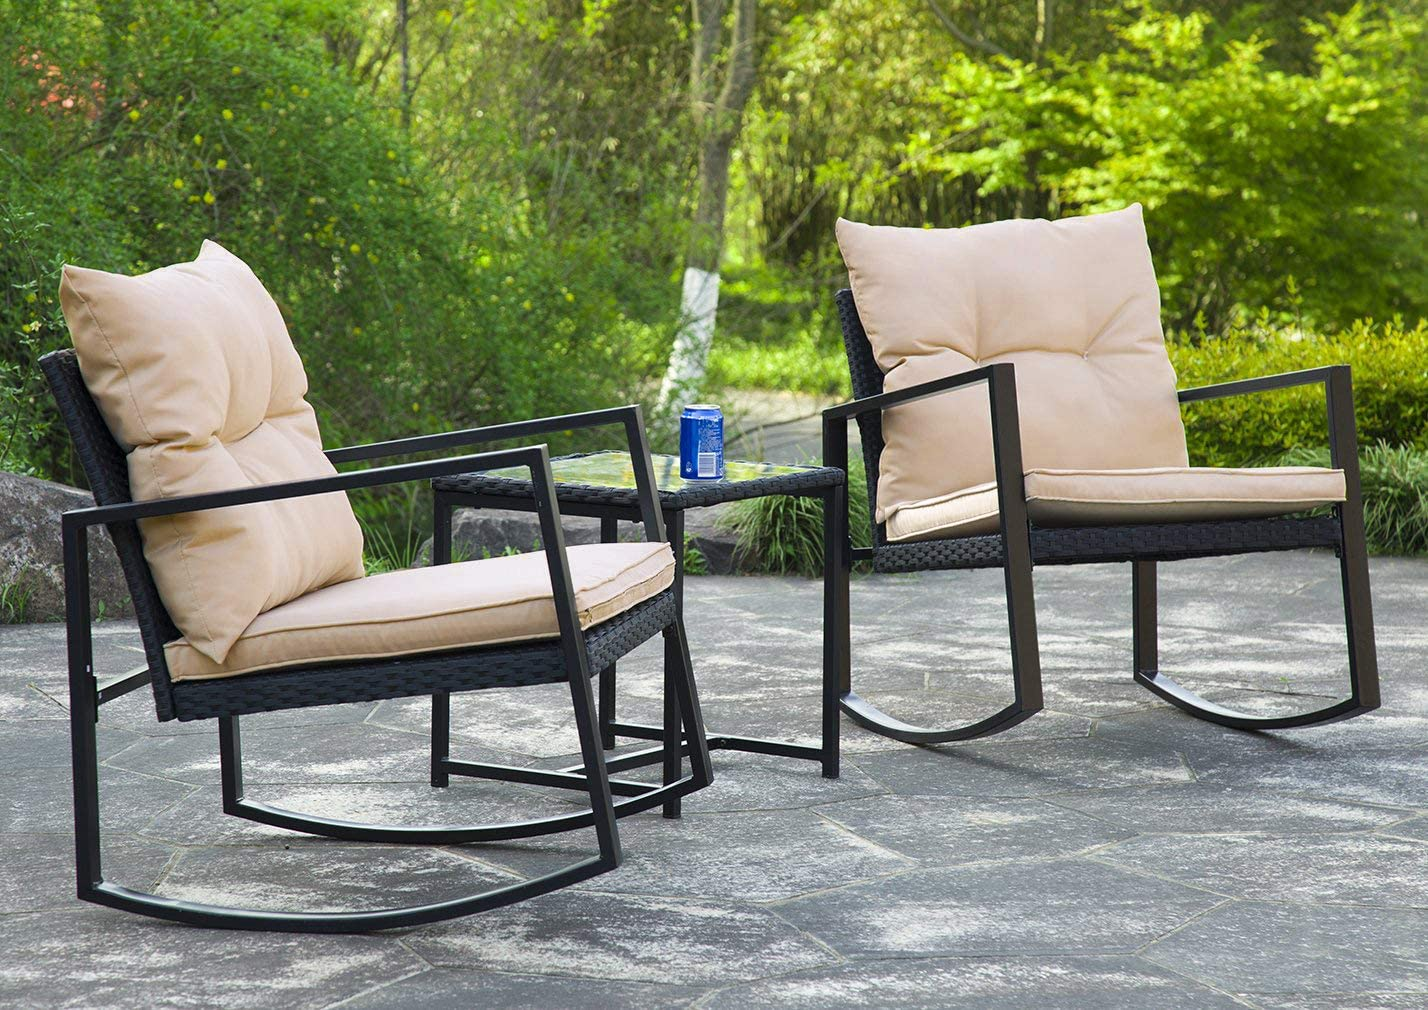 3 pieces patio set outdoor patyo patio furniture sets rocking chair bistro set rattan chair conversation sets garden porch furniture sets with coffee